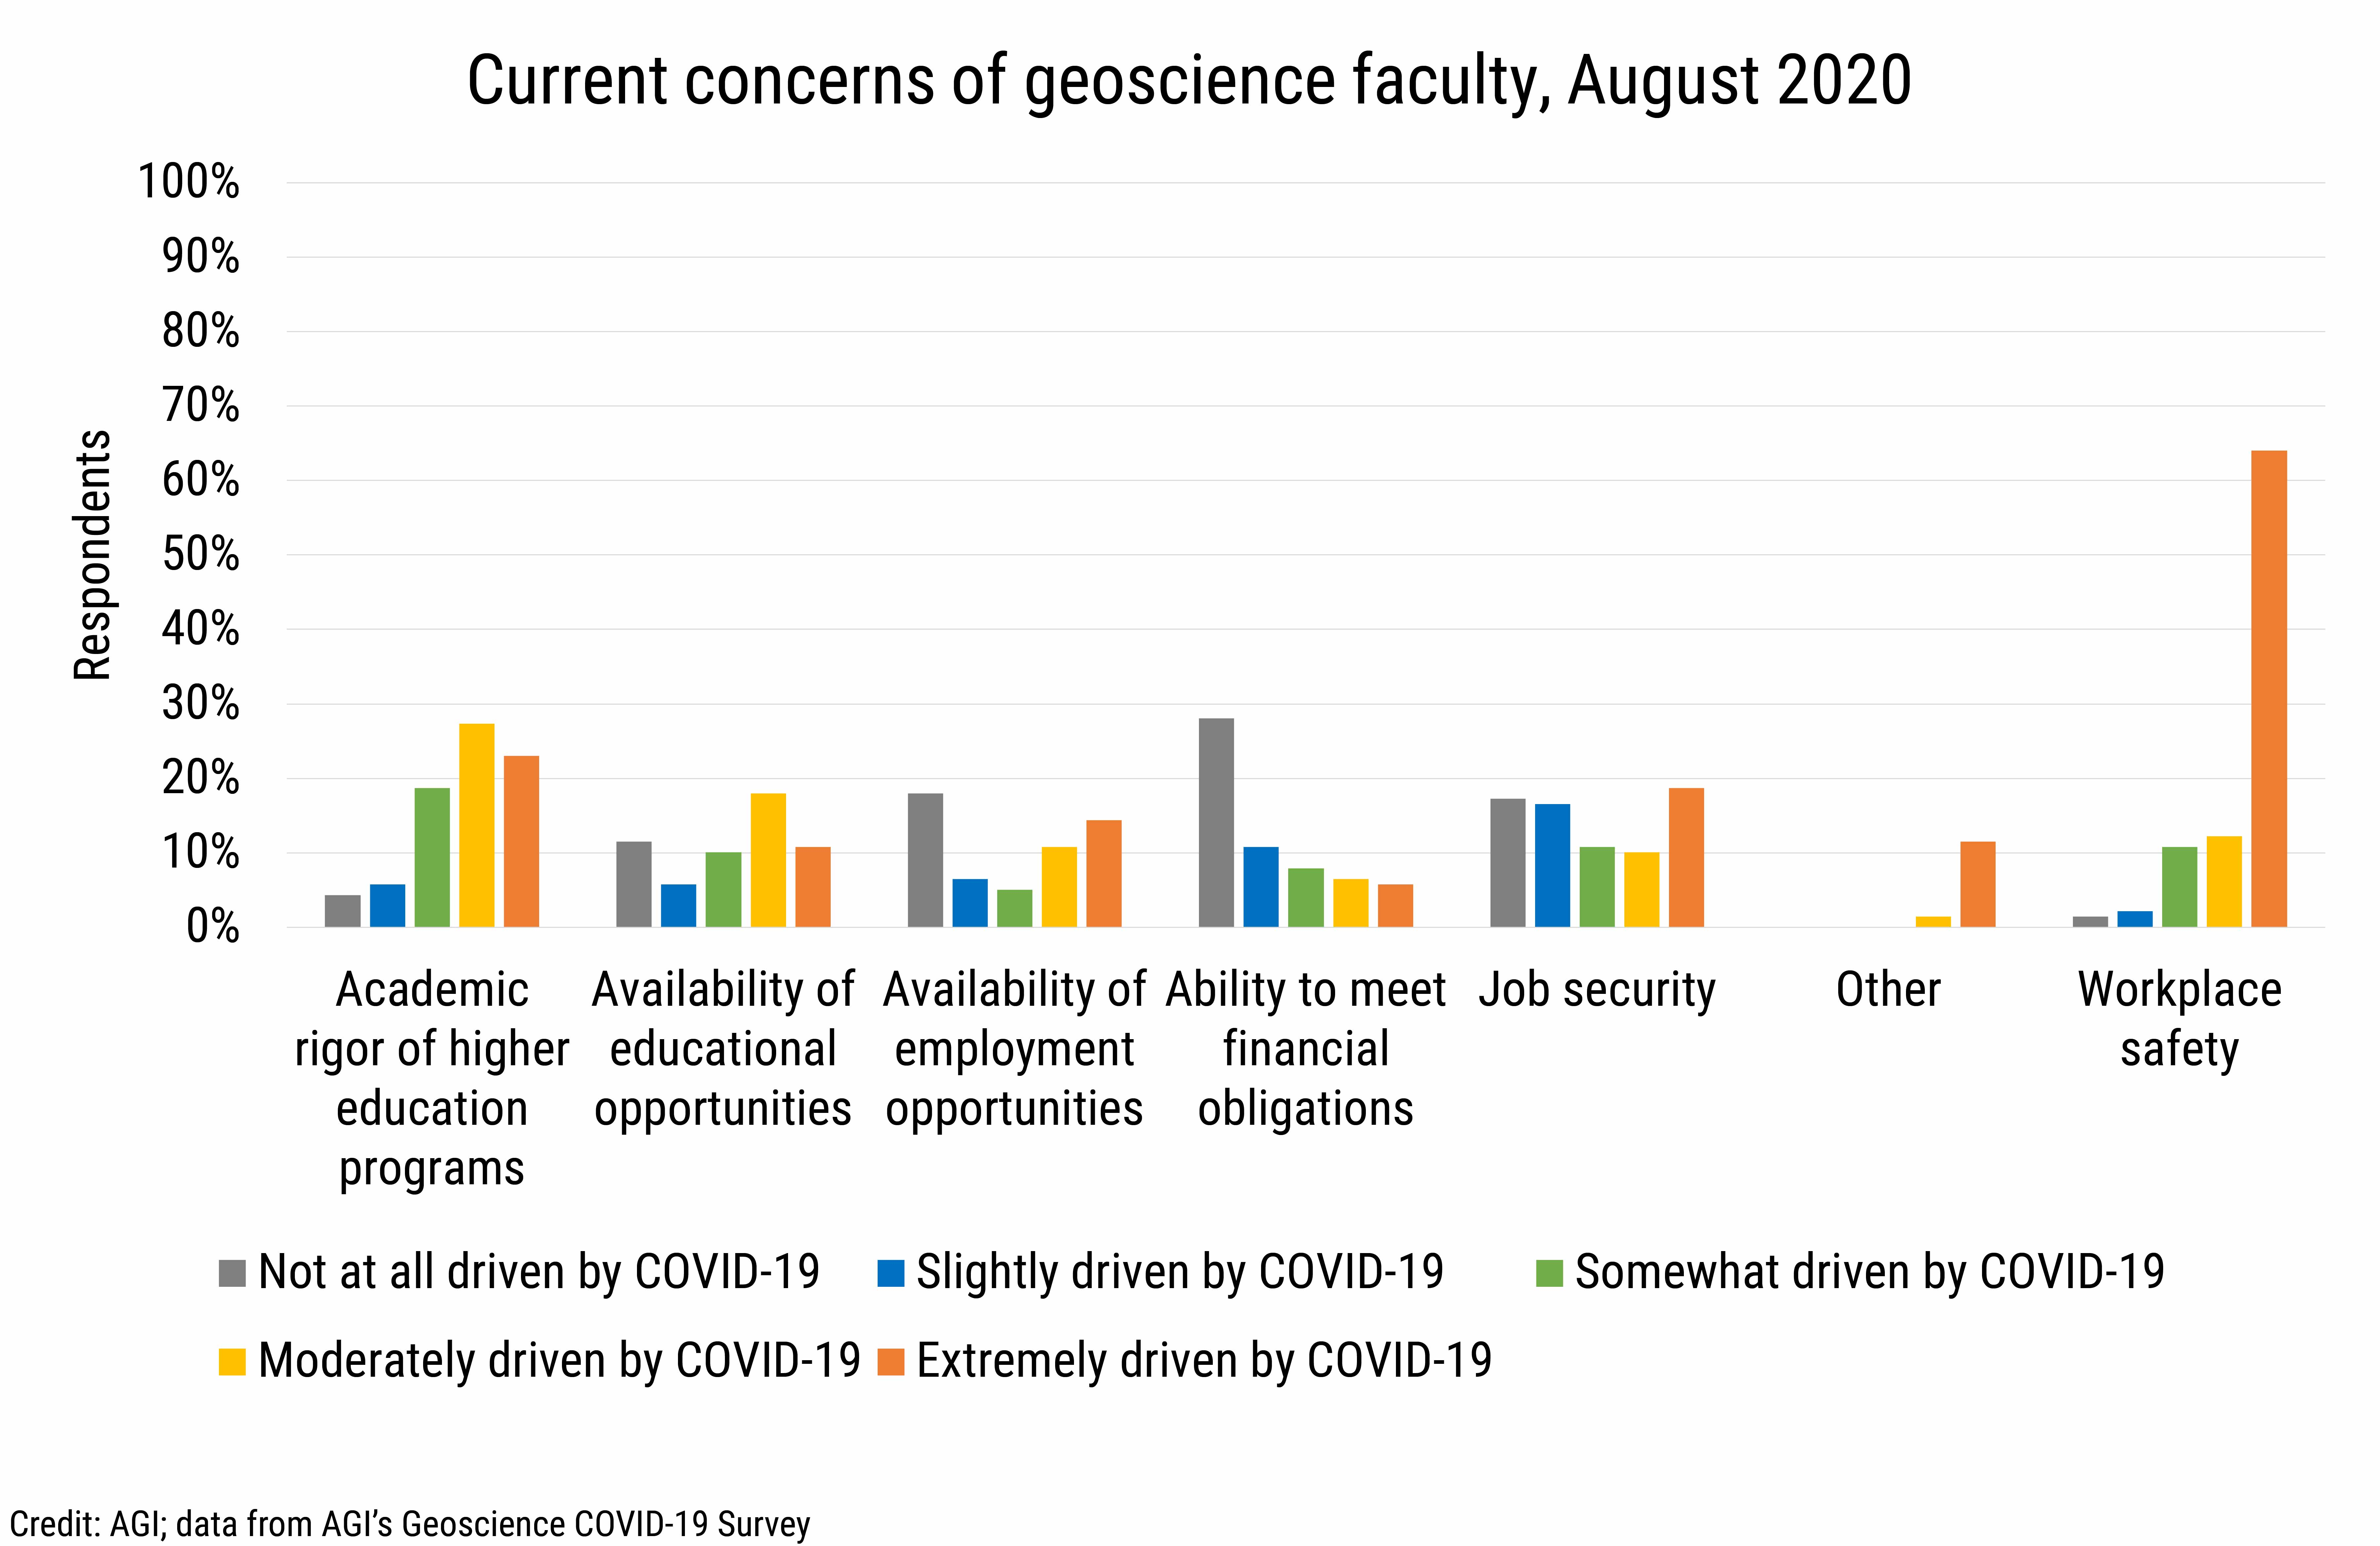 DB_2020-018 chart02: Current concerns of geoscience faculty, August 2020 (credit: AGI, data from AGI's Geoscience COVID-19 Survey)